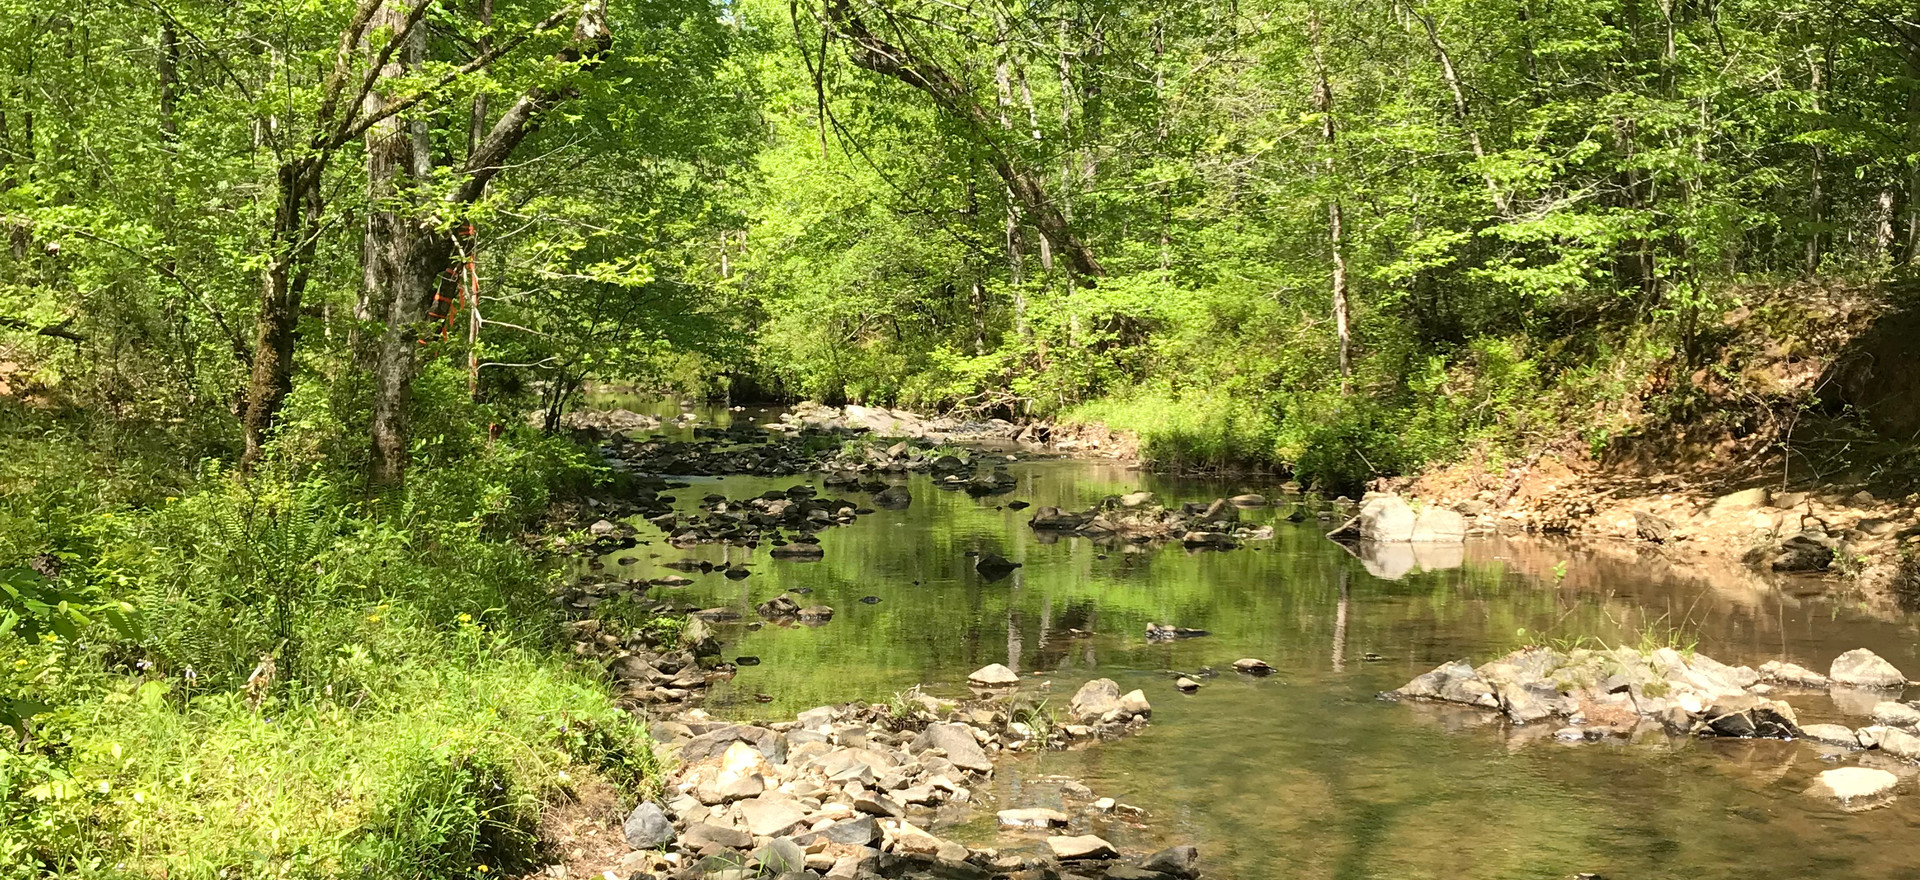 This 151-acre property protects a tributary of Coody Creek, with mesic hardwoods and pine forests managed with fire for wildlife habitat and species diversity. Frequent fire management supports diverse wildlife, including turkeys and coveys of quail.